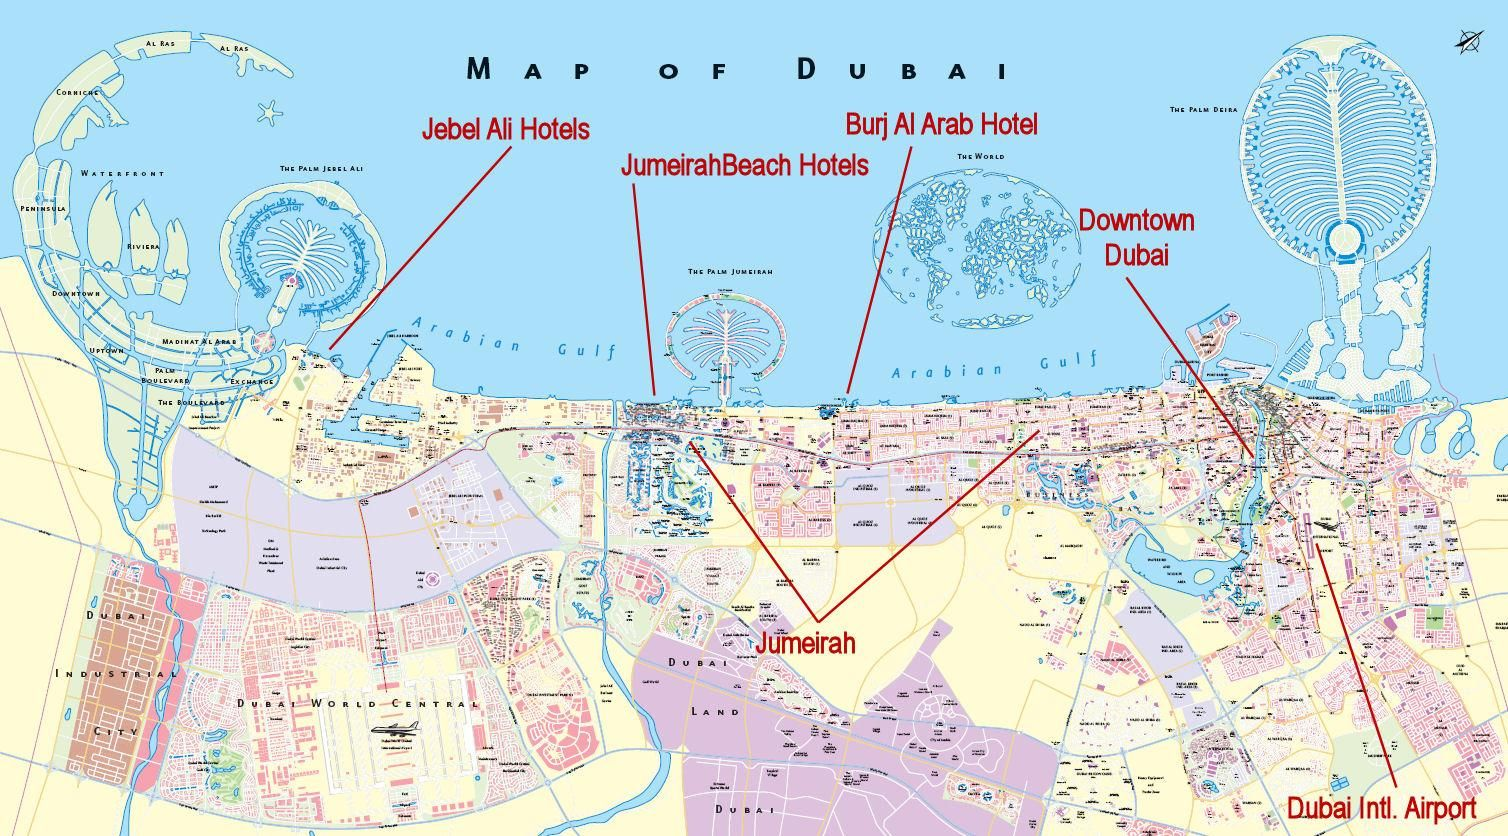 desert palm dubai location map Complete Dubai City Map Plus Travel Information Guide For desert palm dubai location map